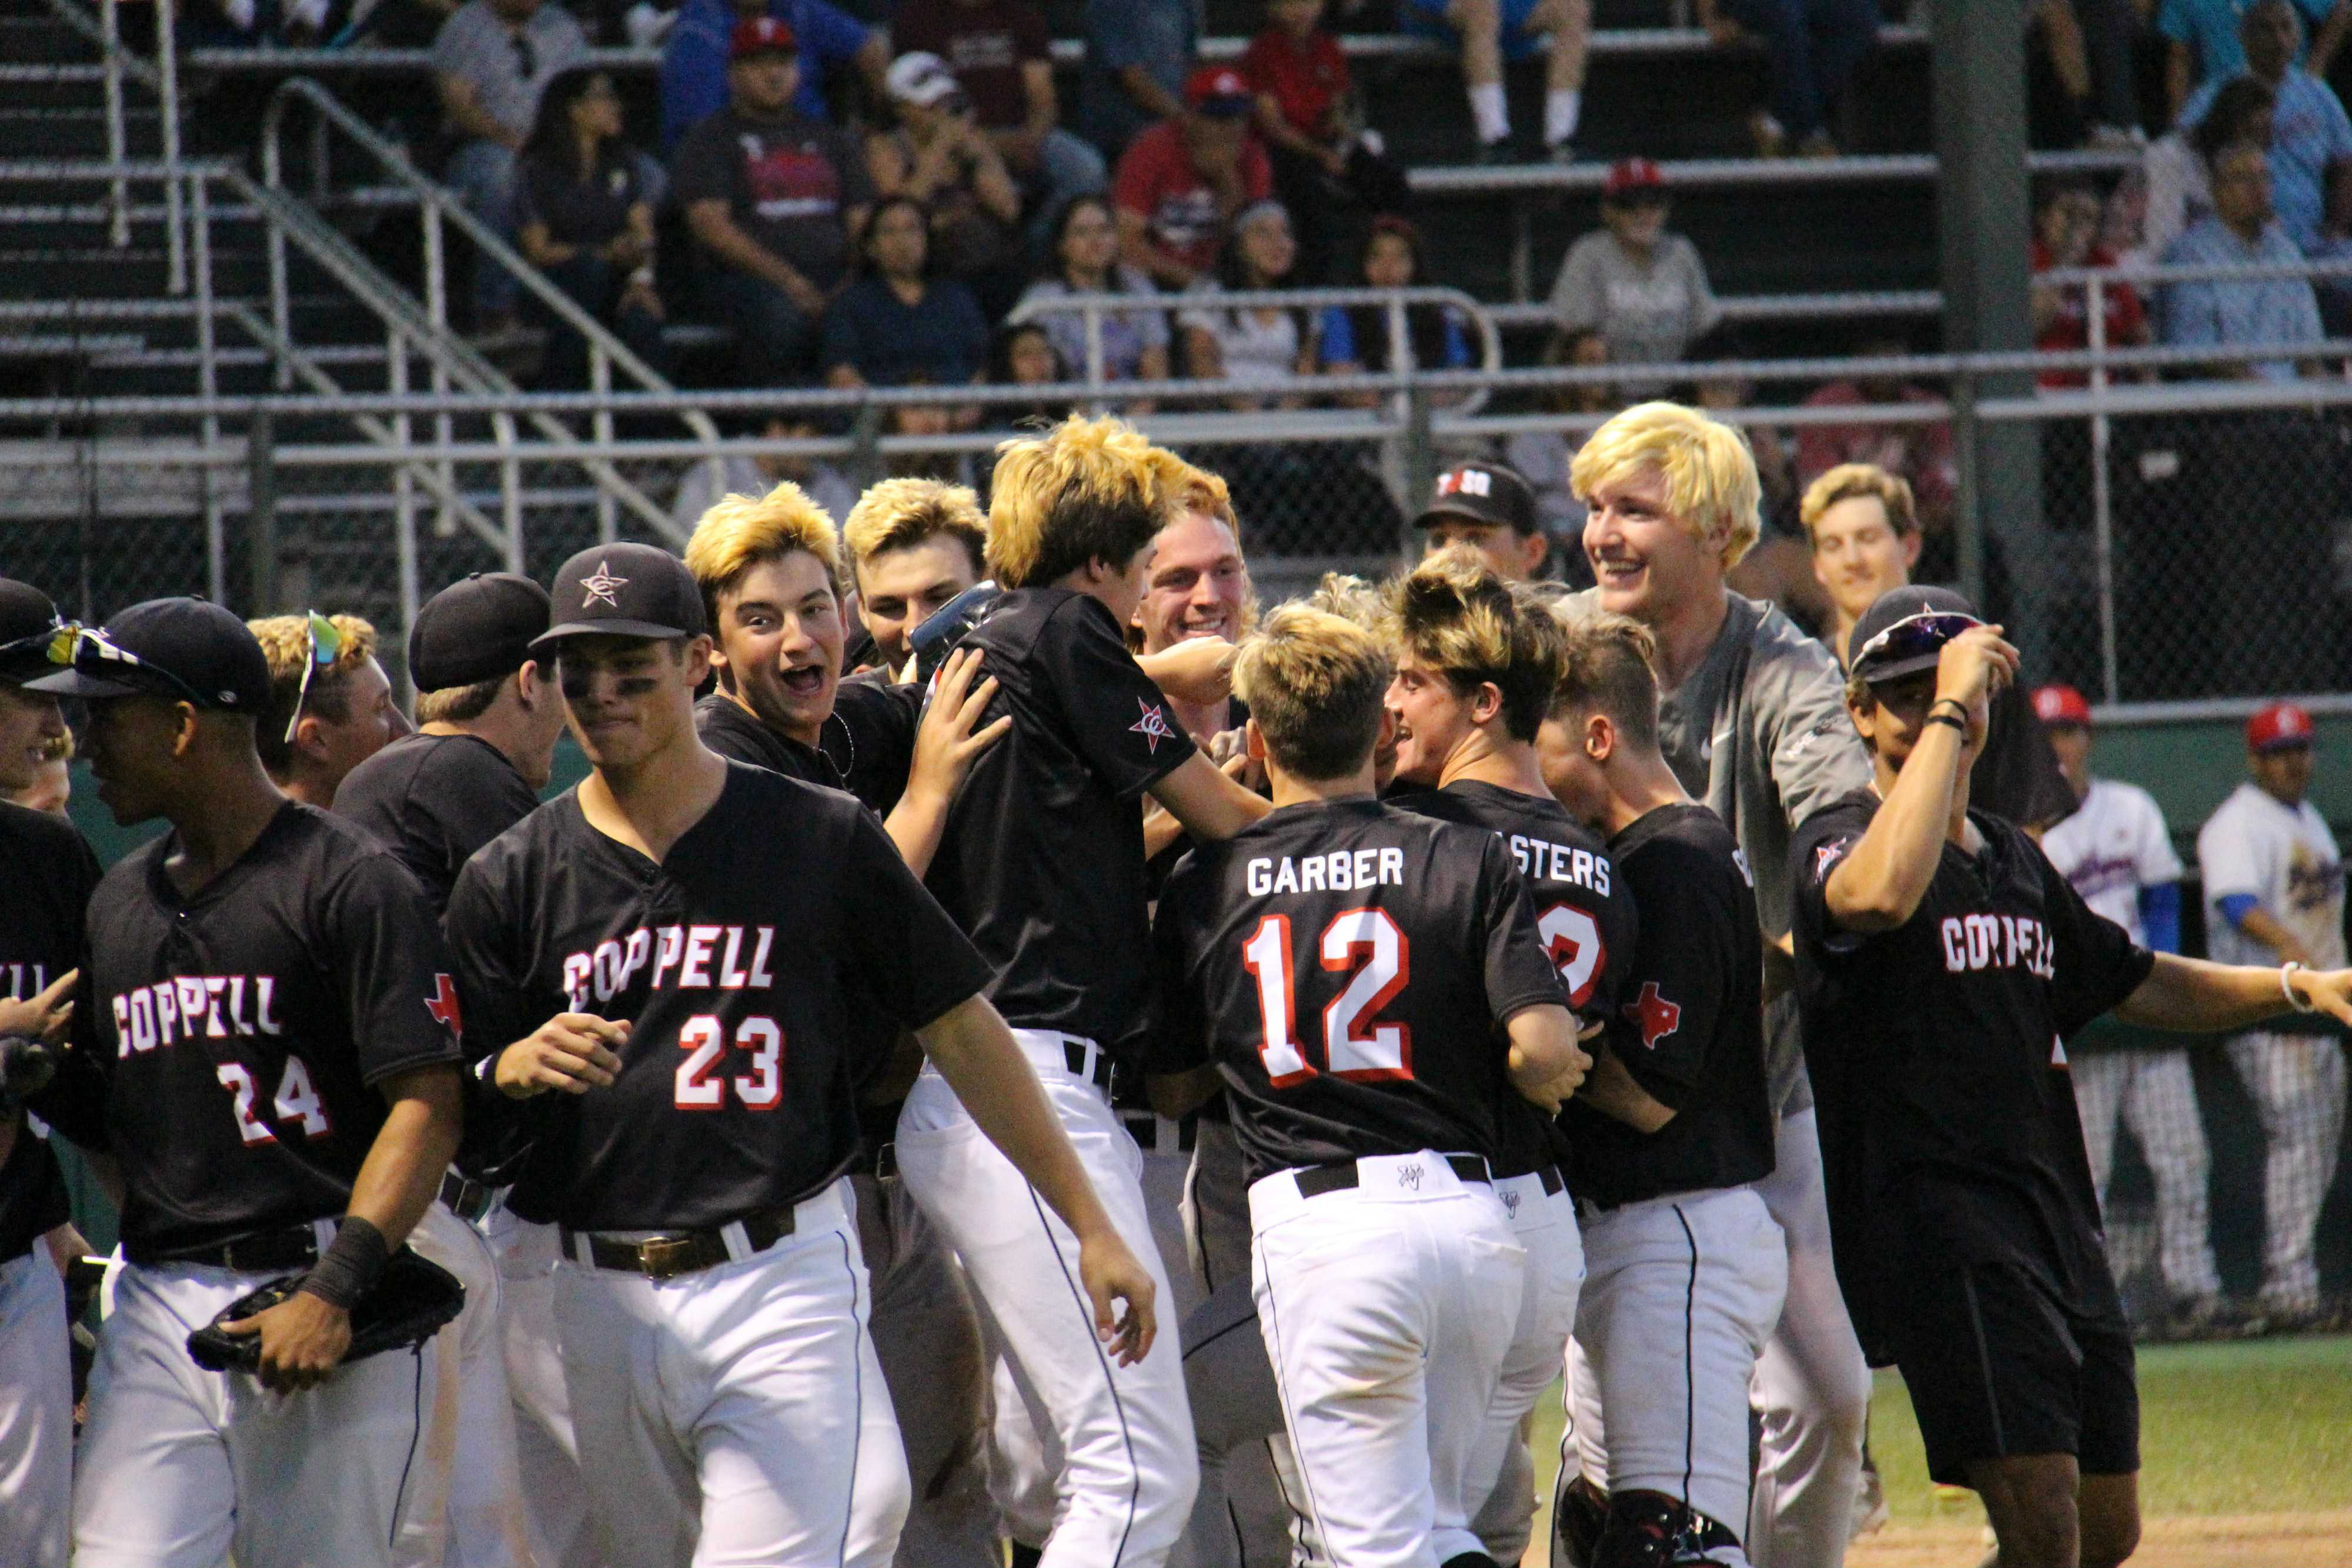 The Cowboys mob junior shortstop Jacob Nesbit after his two-run jimmy-jack broke the game wide open for Coppell. Nesbit's homer added two much-needed runs in the top of the sixth as the Cowboys would go on to win 8-1 in Duncanville.